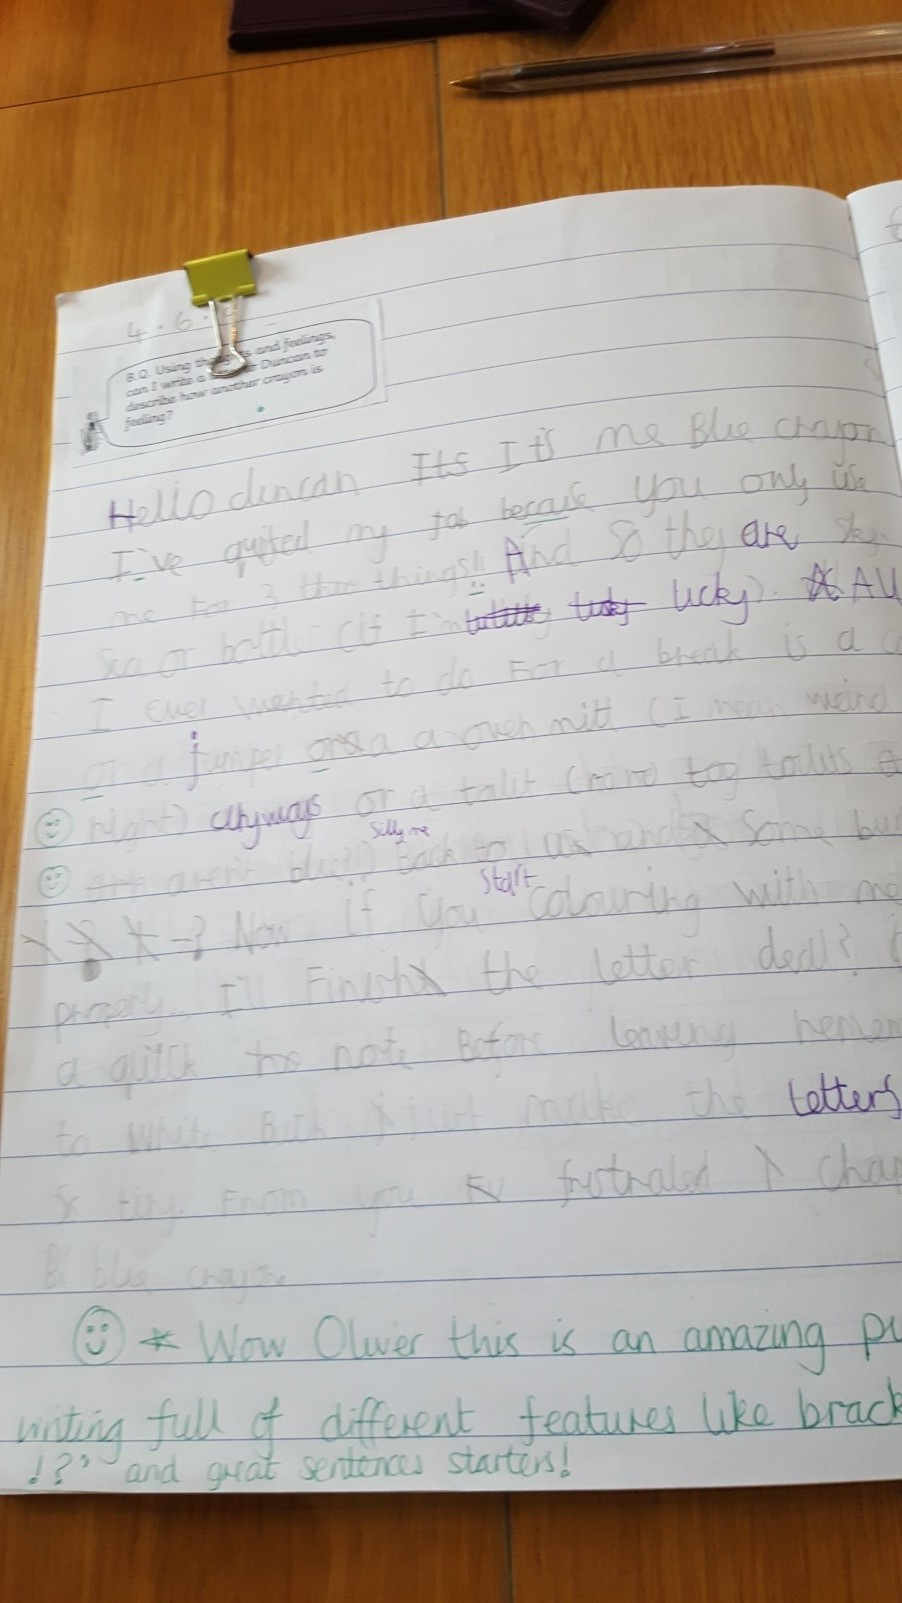 Here is Oliver's letter! We are very proud of Oliver's writing and he should be too! -